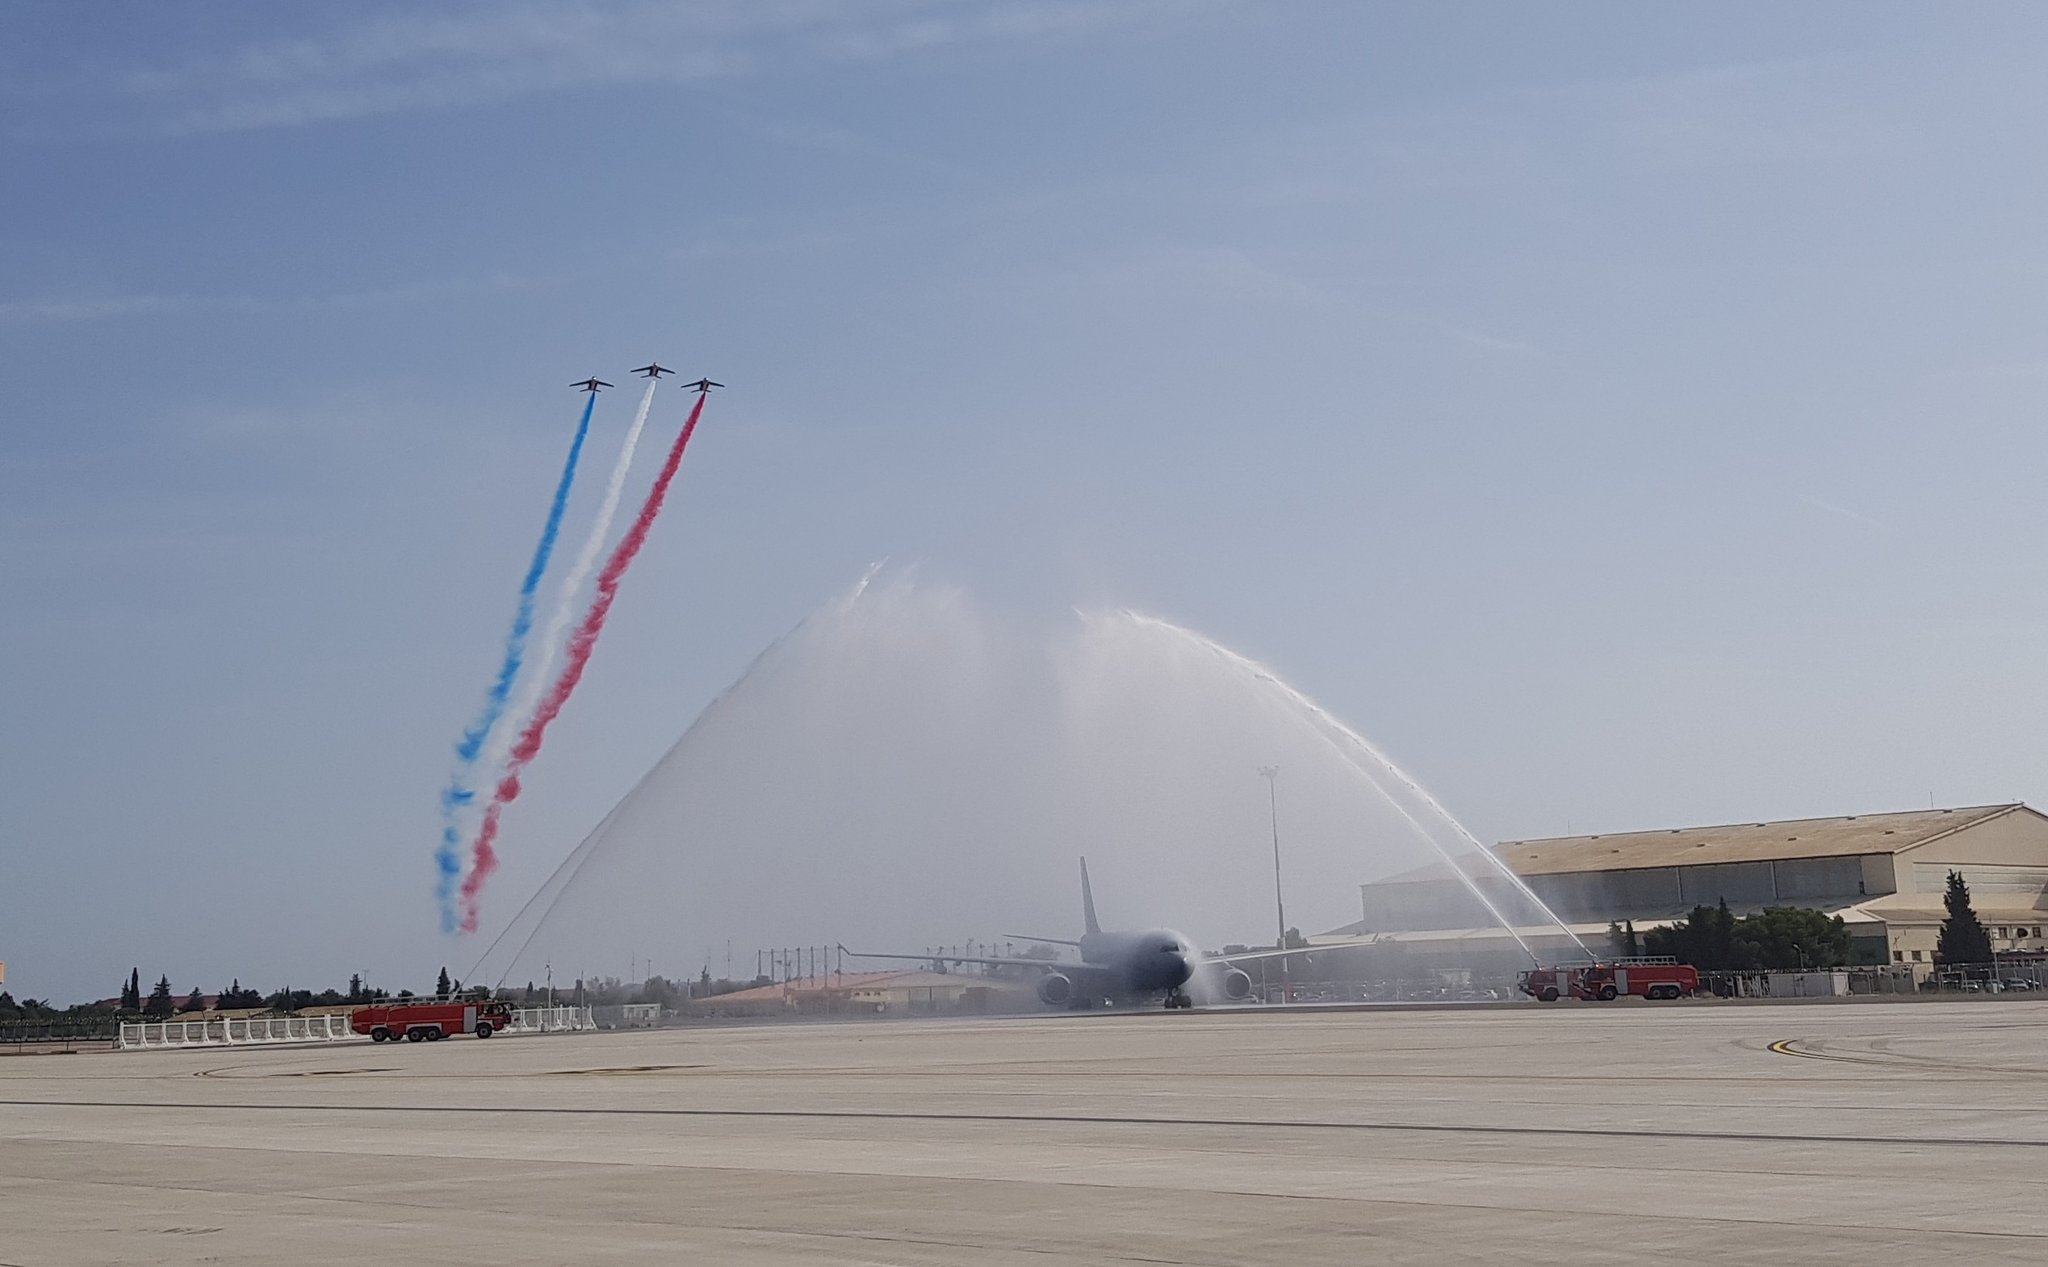 French Air Force Celebrates Arrival of Airbus A330 MRTT 'Phénix